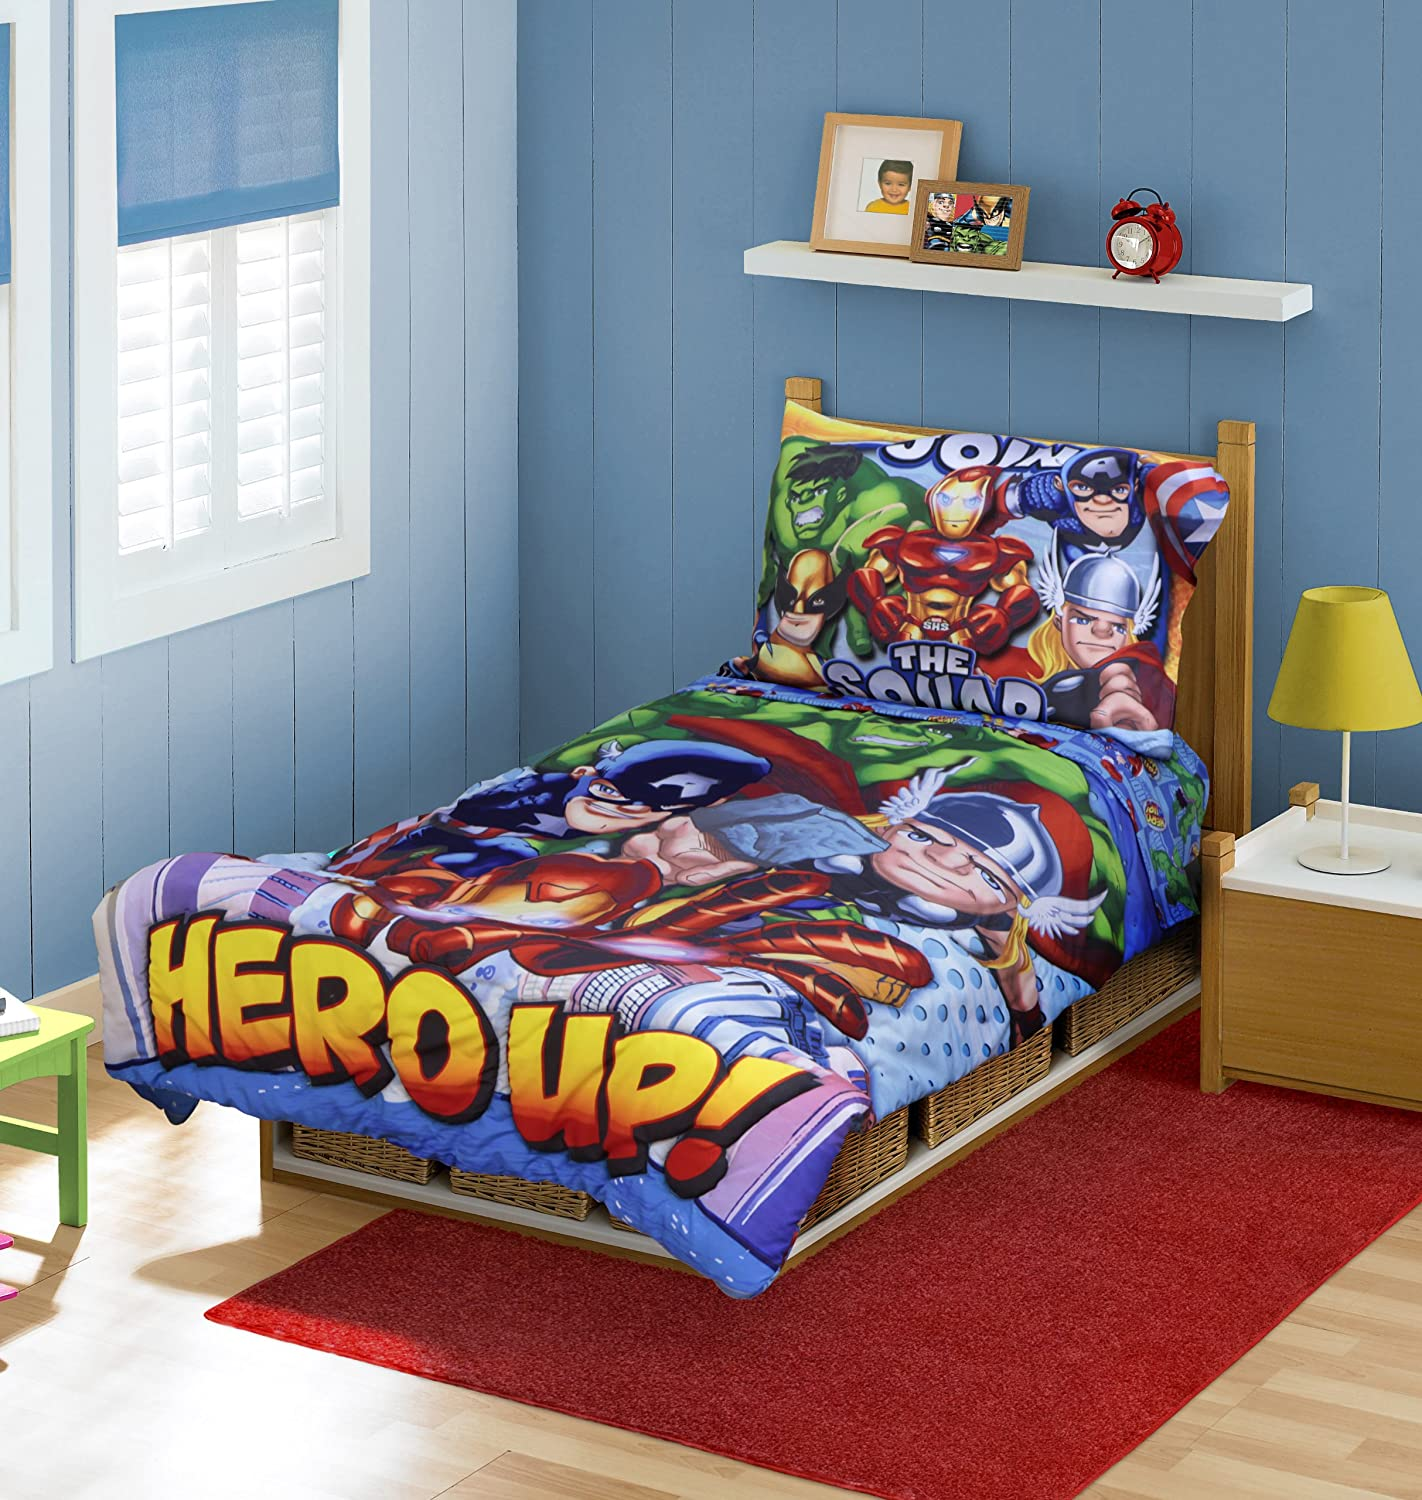 Avengers bedding - Amazon Com Marvel Super Hero Squad Toddler Bedding 4pc Set Discontinued By Manufacturer Avengers Toddler Bed Set Baby